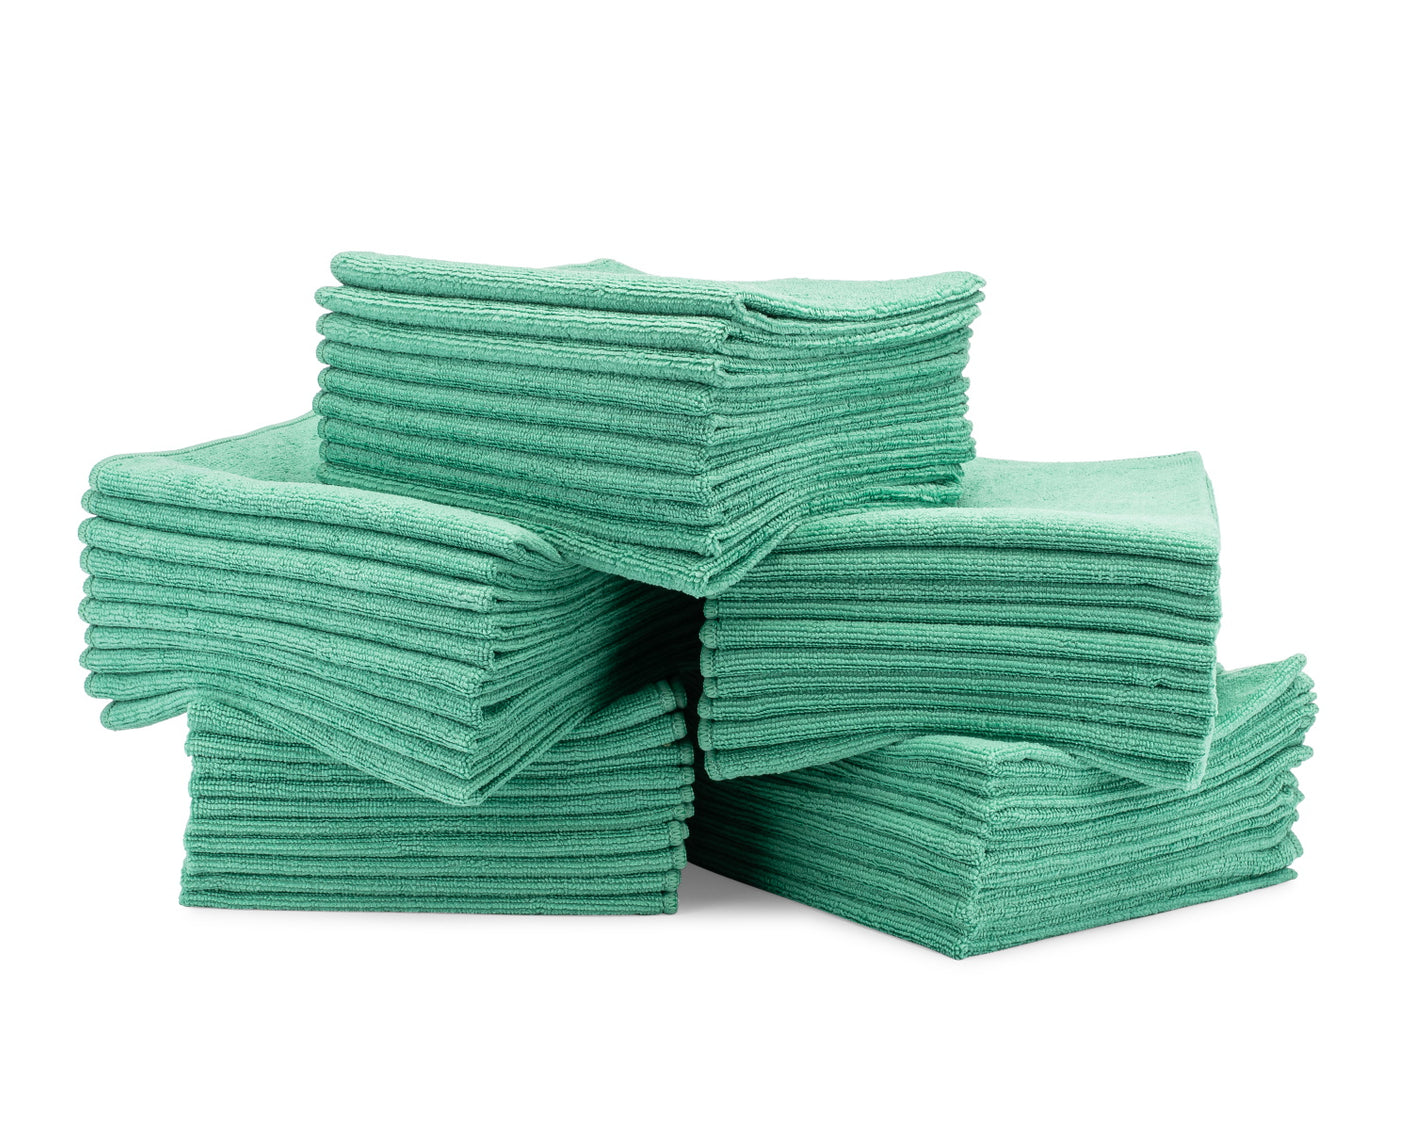 16 x 16 Microfiber Towels Bulk 50 Pack Green